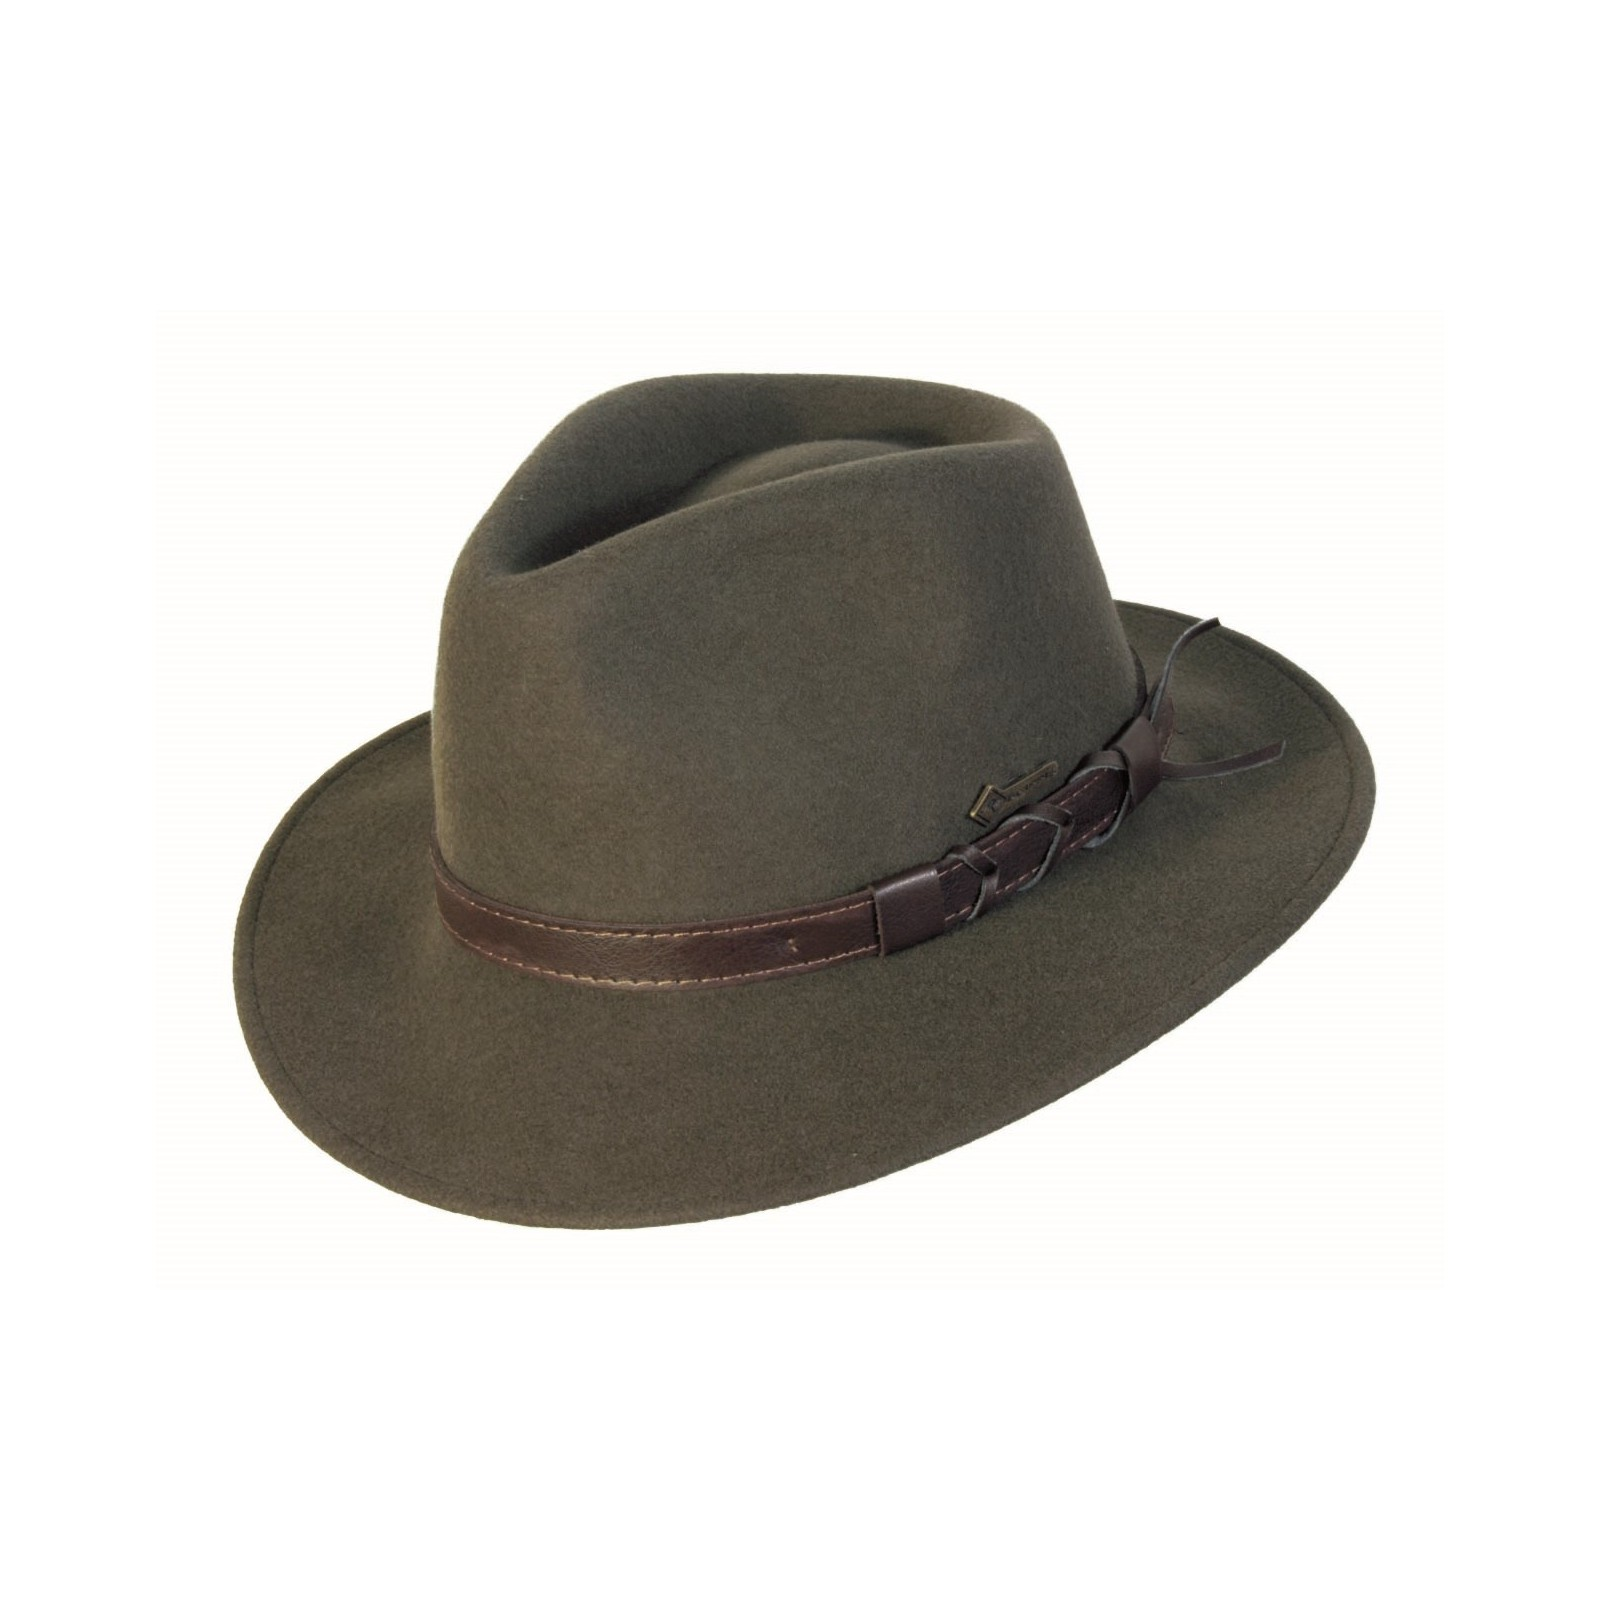 Norton hat